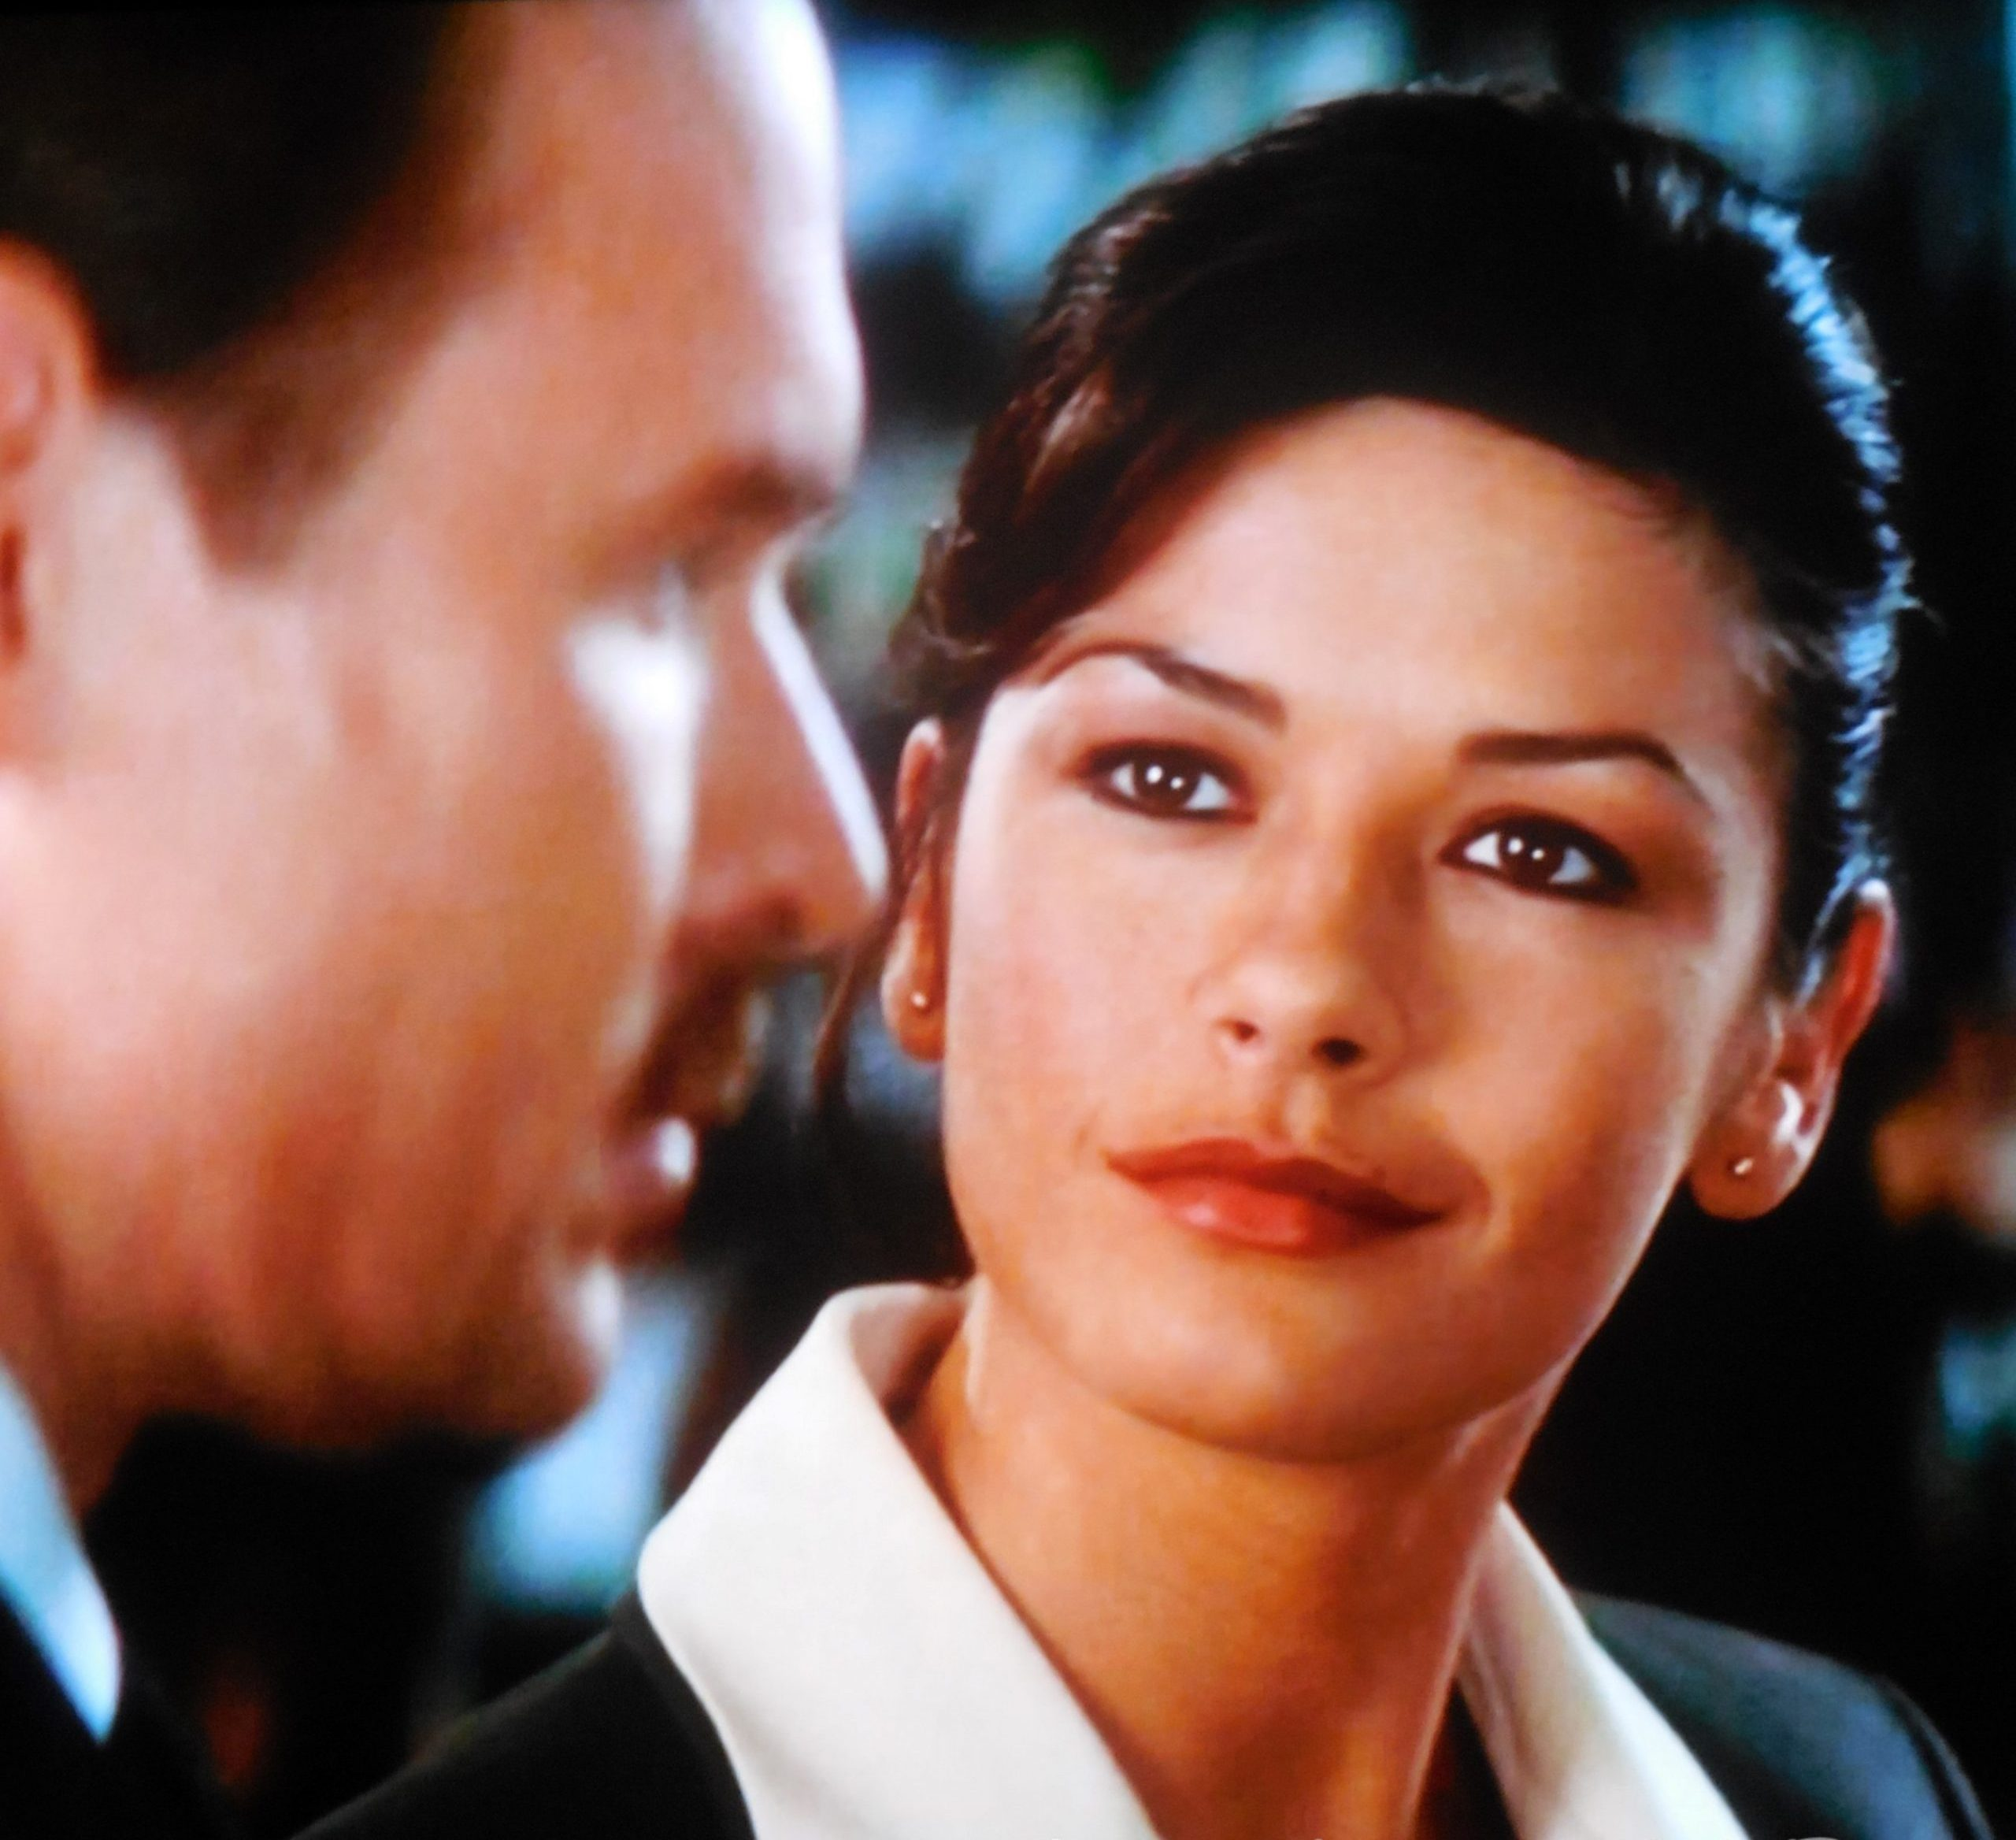 6w1 scaled e1603185144931 20 Things You Never Knew About Catherine Zeta-Jones